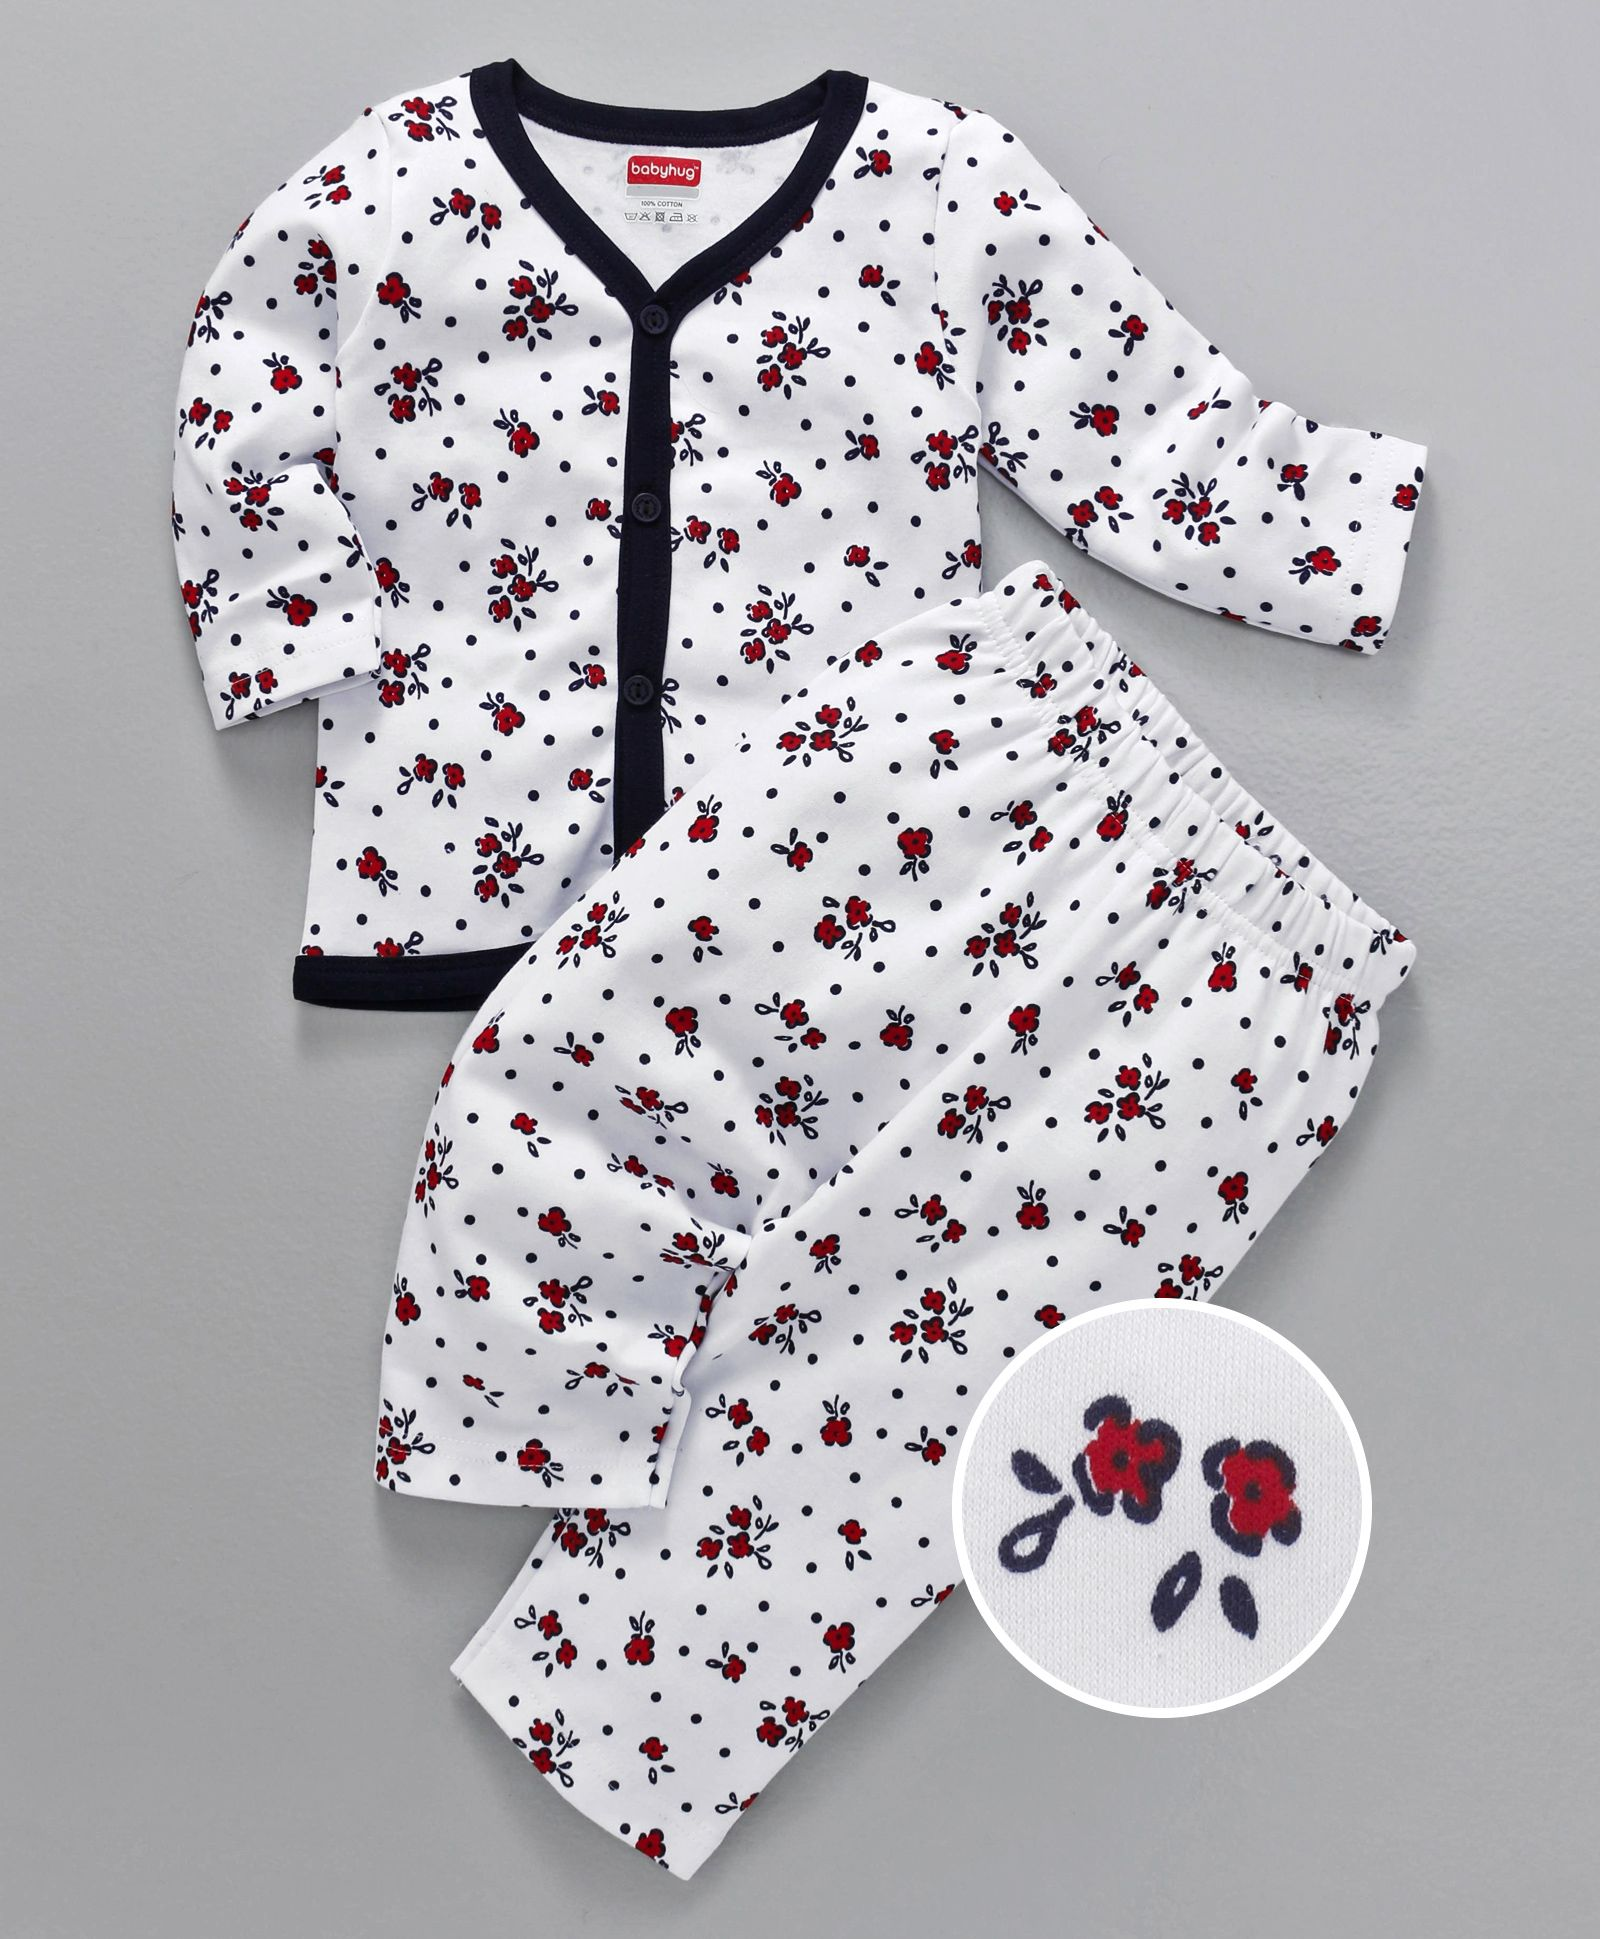 5247e42541a Buy Babyhug Full Sleeves Cotton Night Suit Floral Print White Navy ...